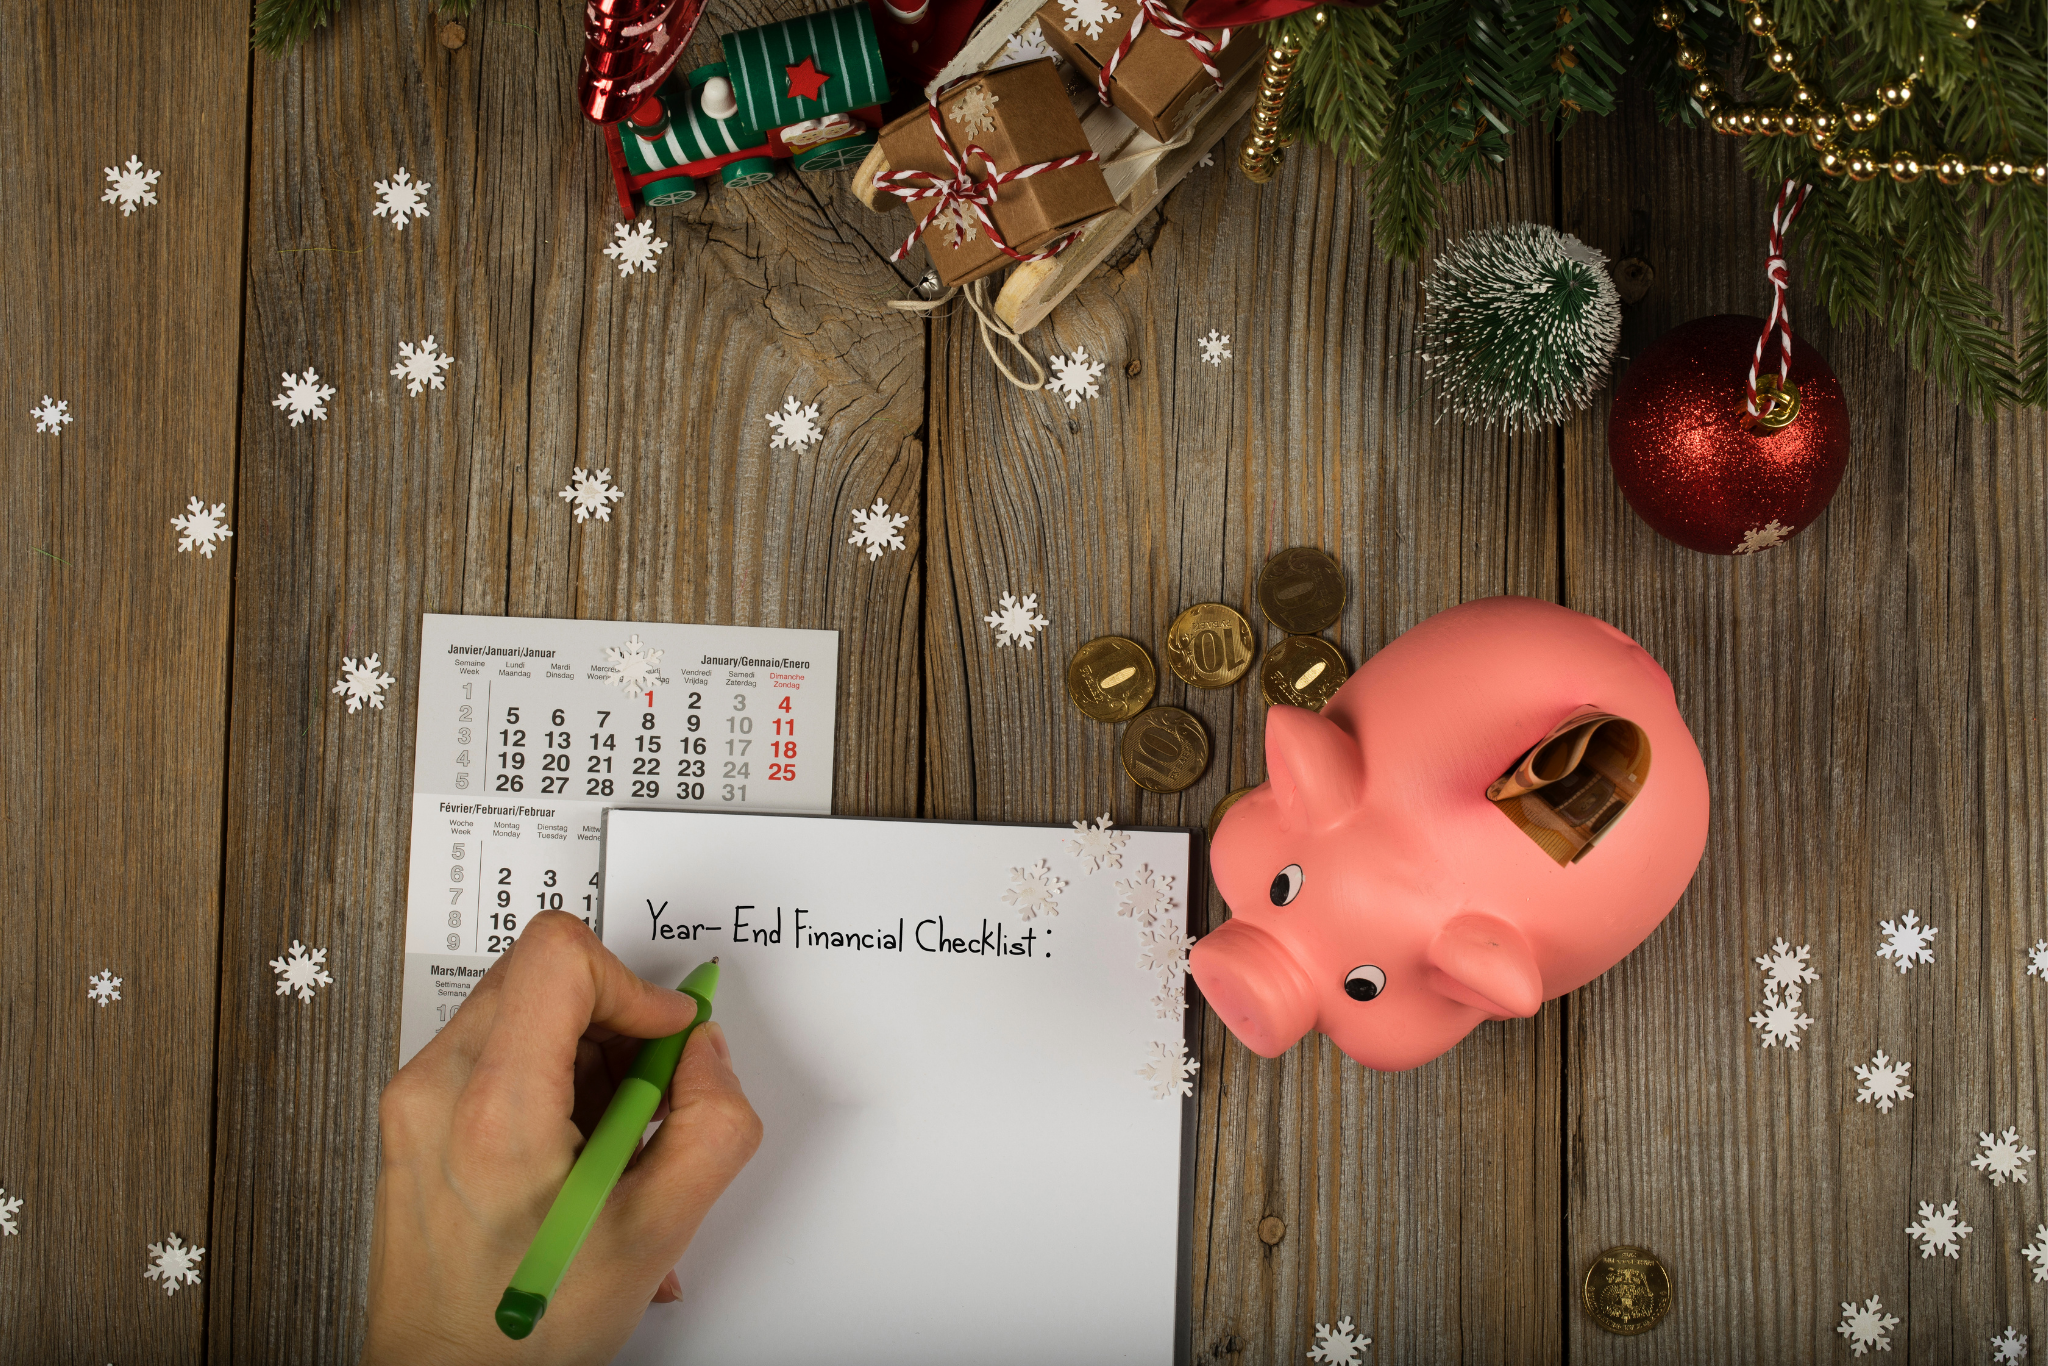 Year-End Financial Checklist: 4 Money Moves You Should Prioritize Now